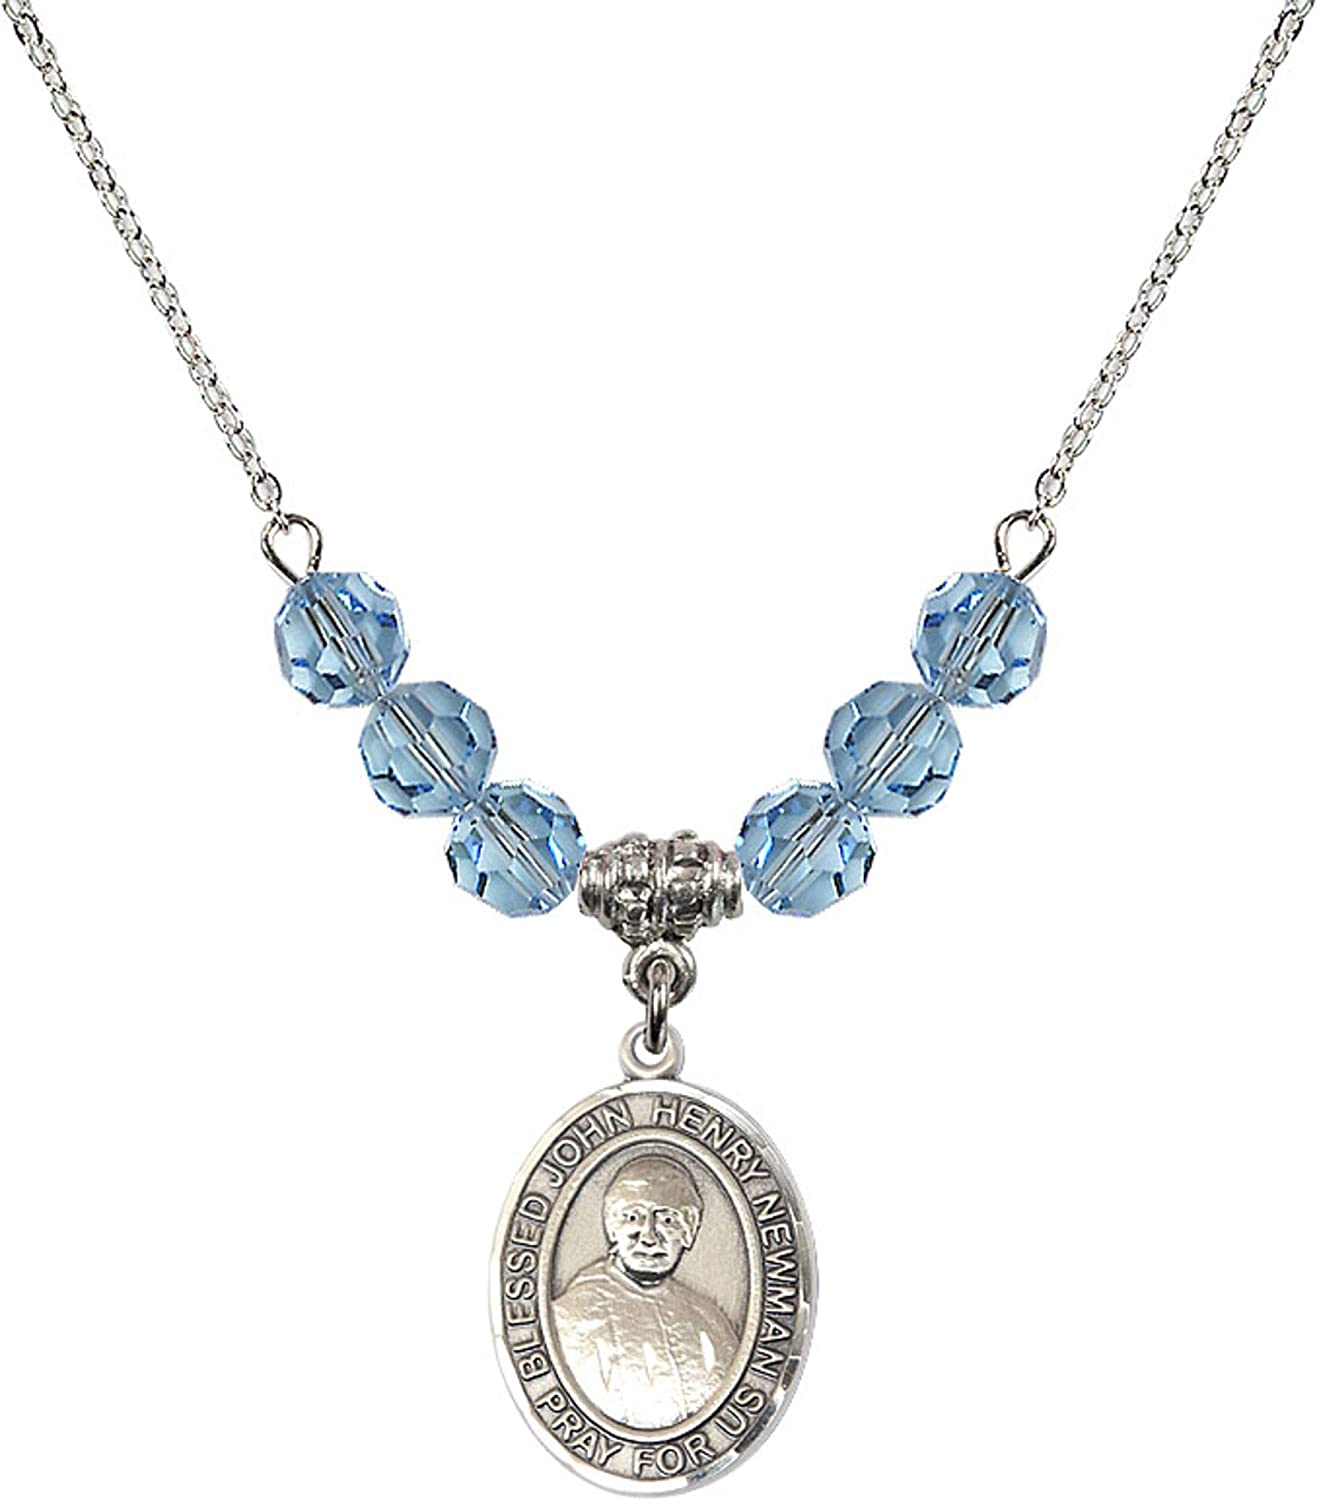 18 Inch Rhodium Plated Necklace w// 6mm Blue March Birth Month Stone Beads and Blessed John Henry Newman Charm